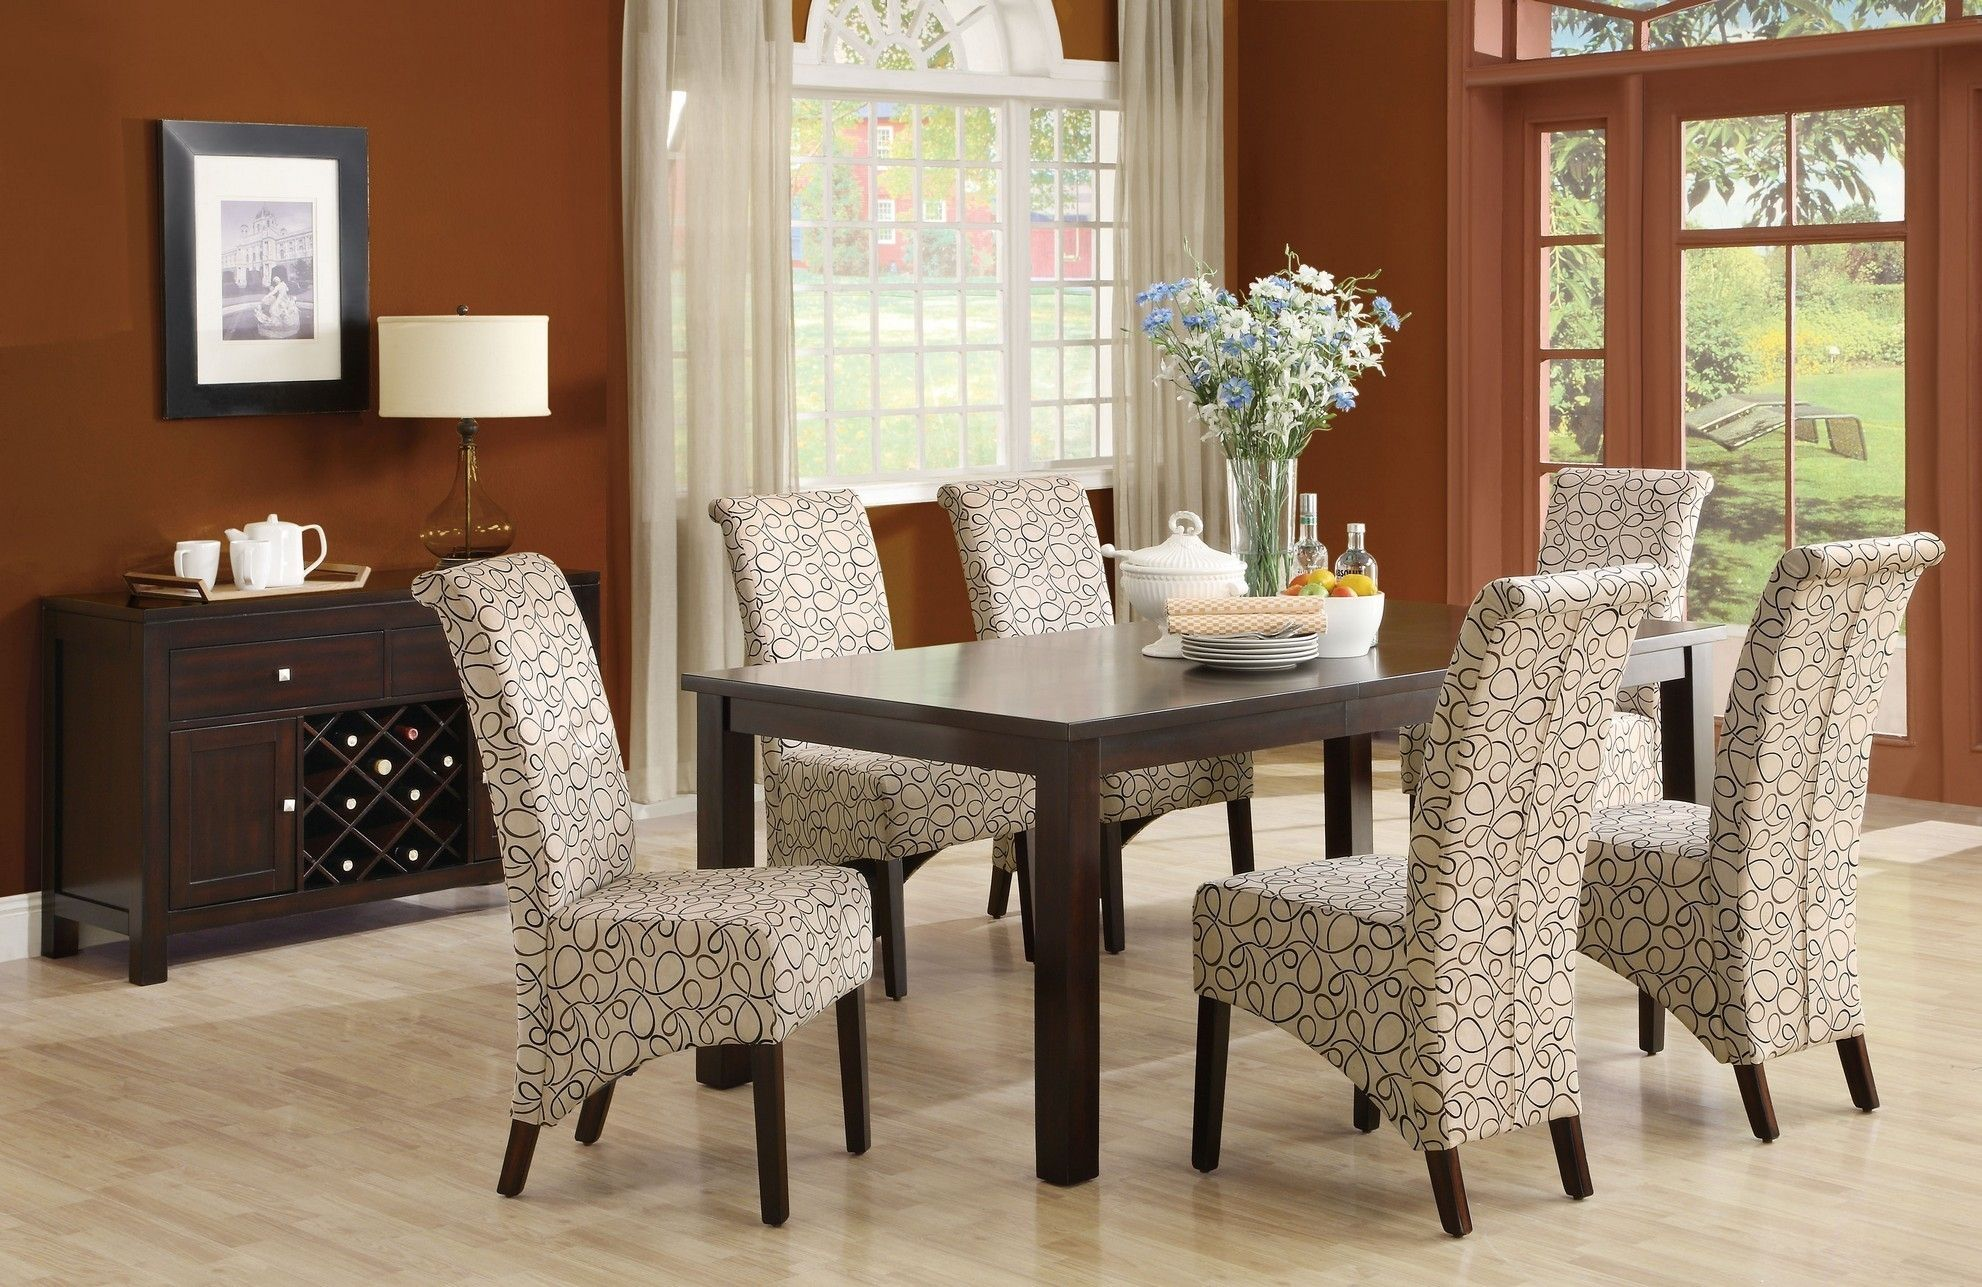 Superbe Awesome Zebra Print Dining Room Chairs